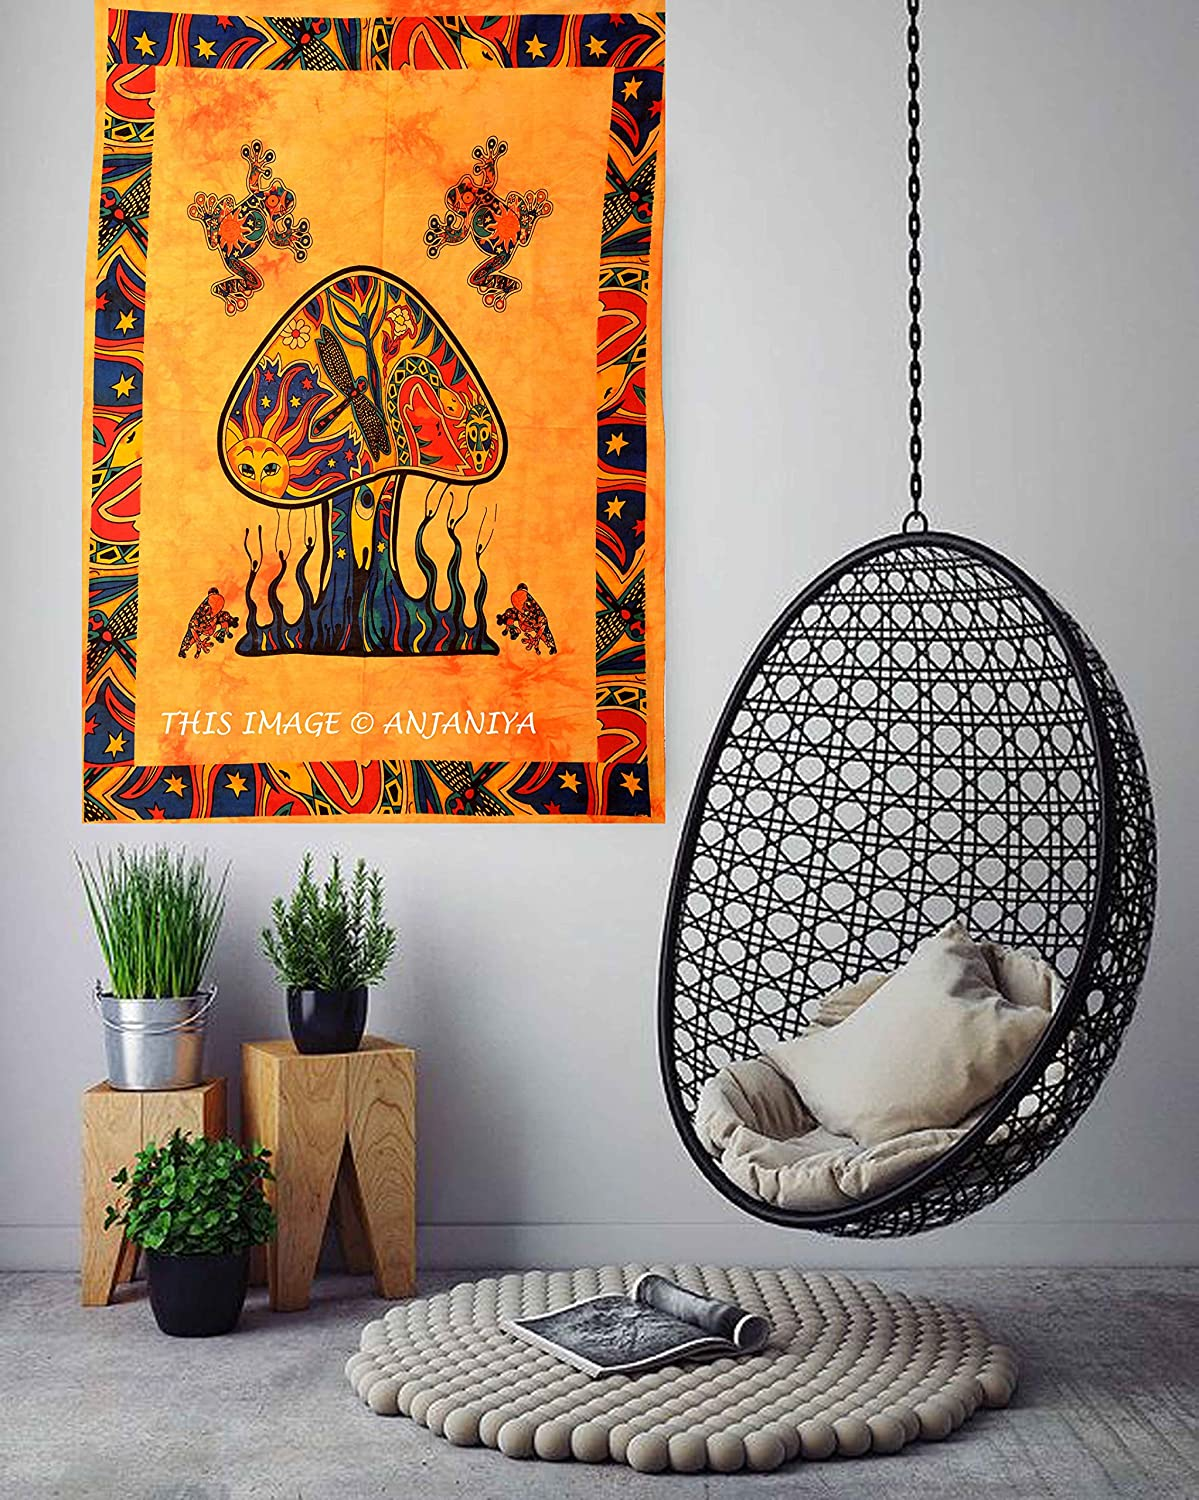 """ANJANIYA Psychedelic Mushroom Tapestry Frogs Magic Shrooms Tapestry Beautiful Bohemian Room Dorm Decor Hippie Tapestry Poster Size 40""""x30"""" Fantasy Wall Hanging Trippy Animal Wall Art (Yellow)"""